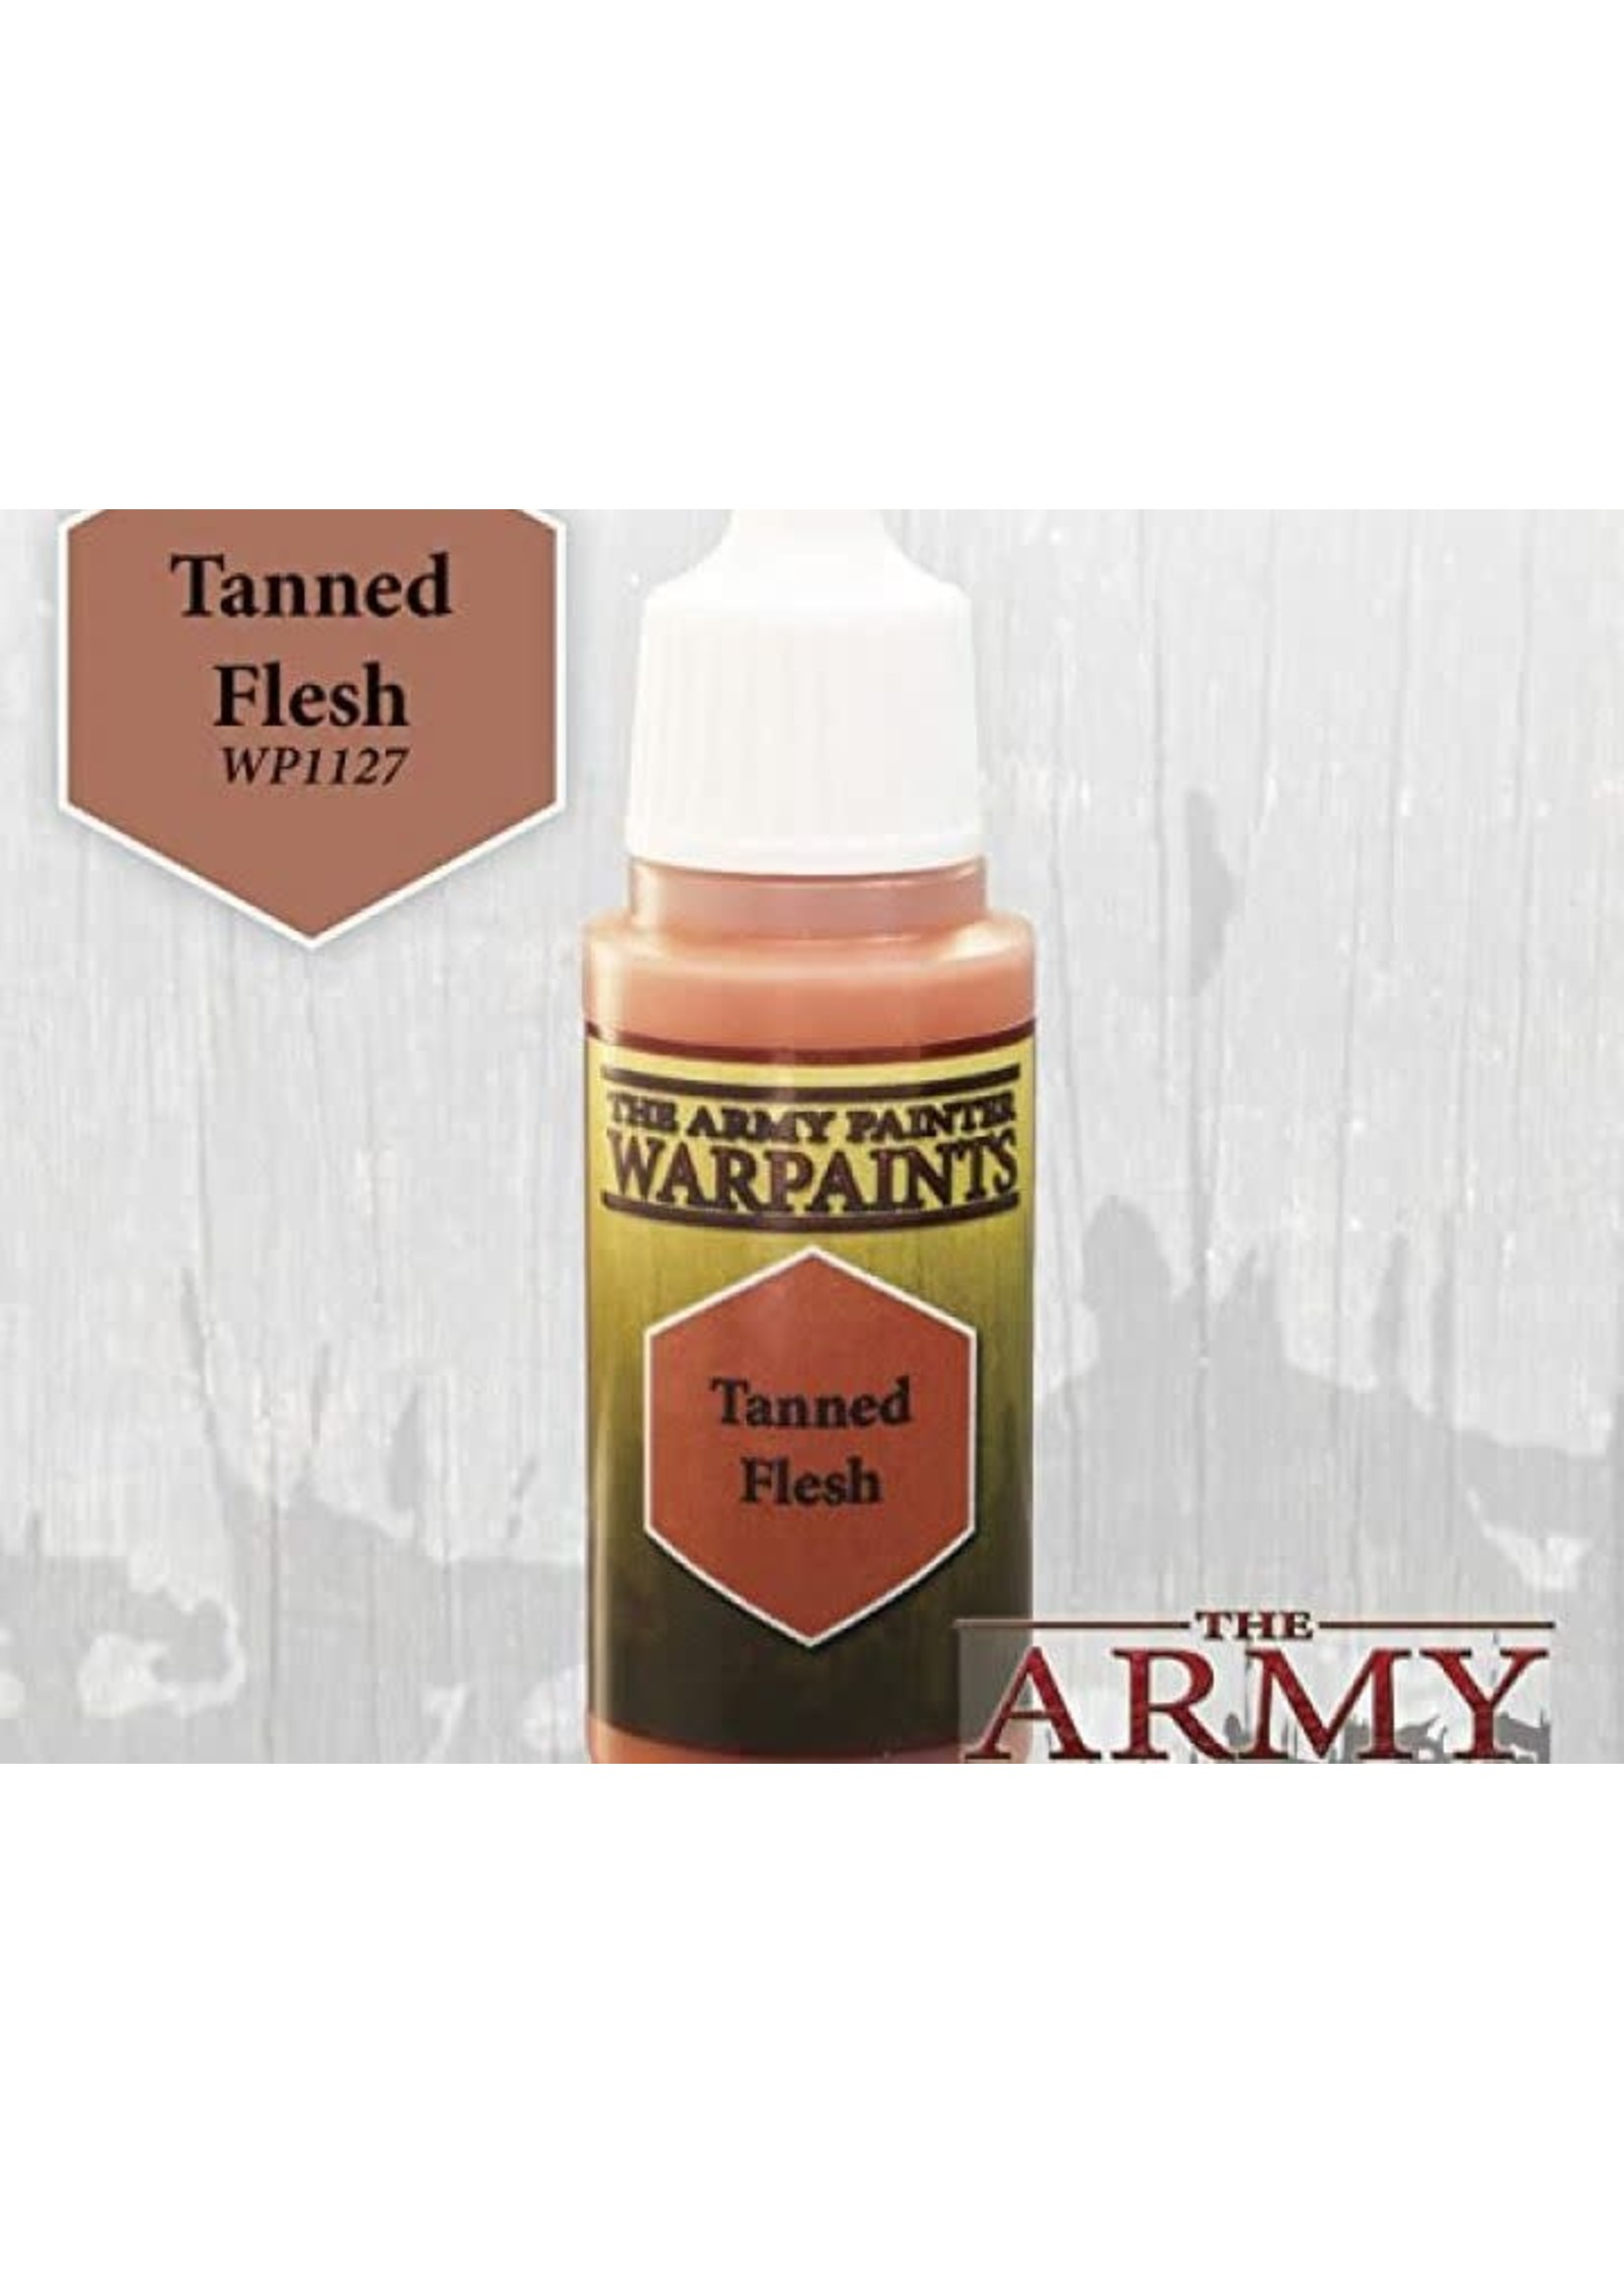 Army Painter Warpaints - Tanned Flesh